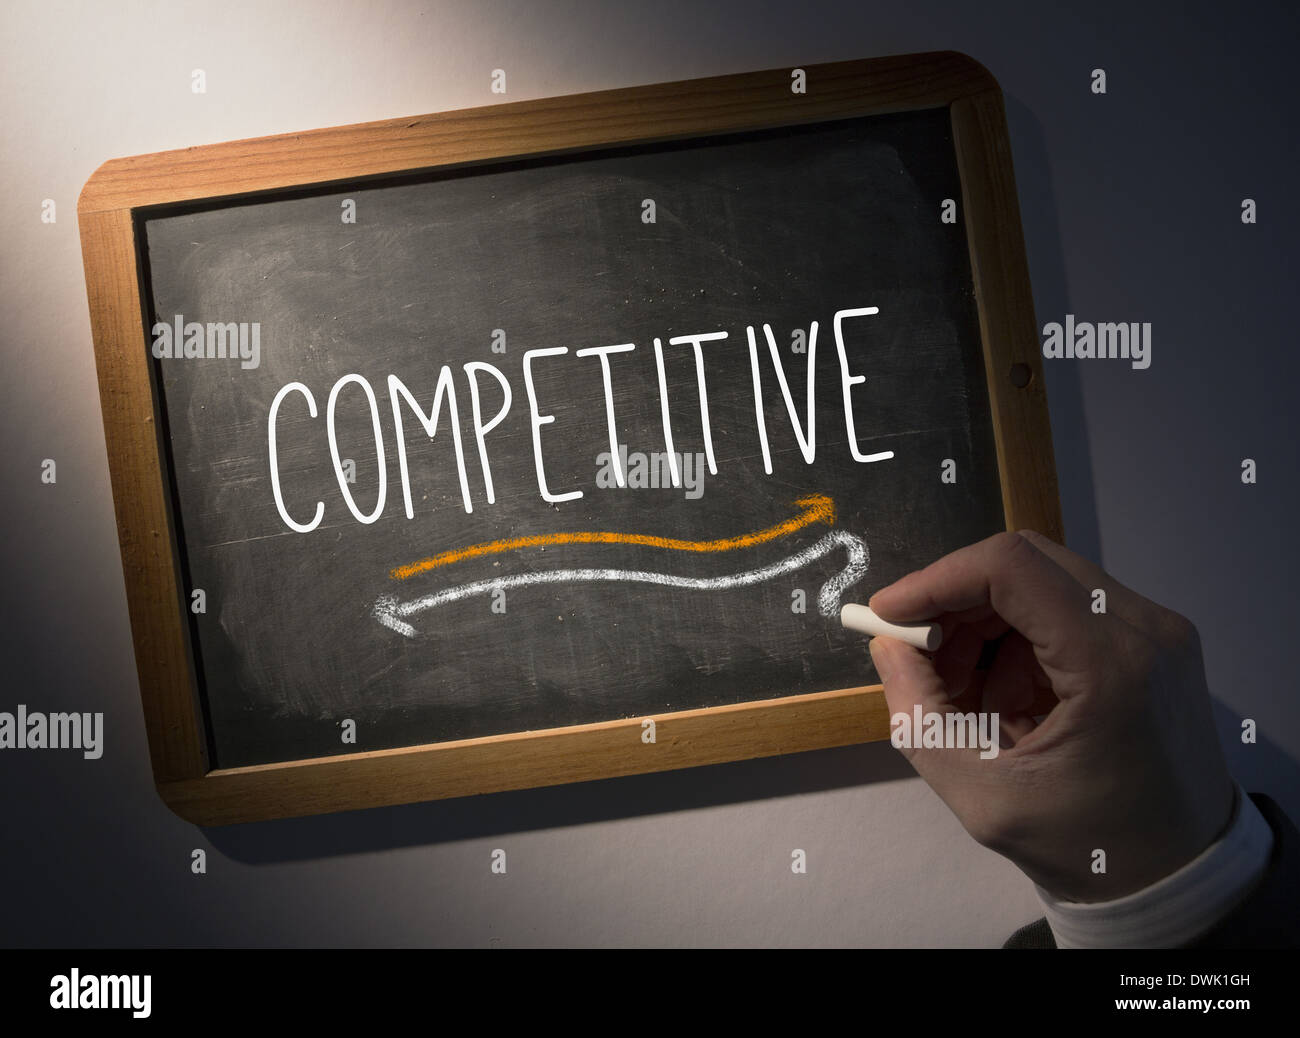 Hand writing Competitive on chalkboard - Stock Image